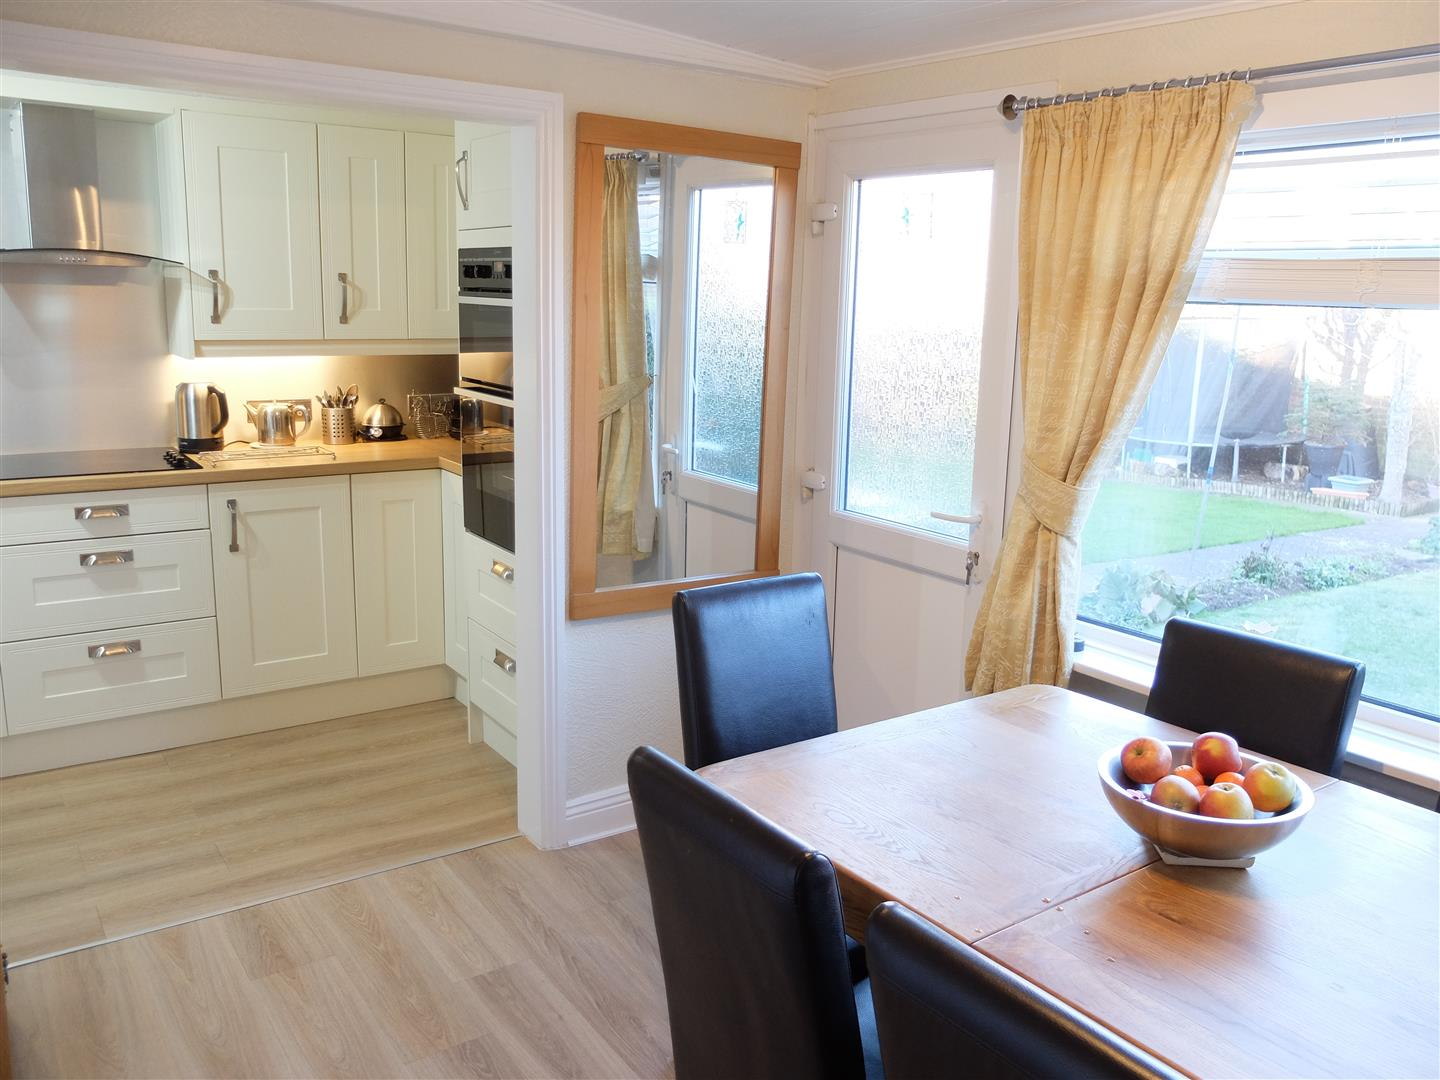 3 Bedrooms House - Semi-Detached On Sale 12 Currock Mount Carlisle